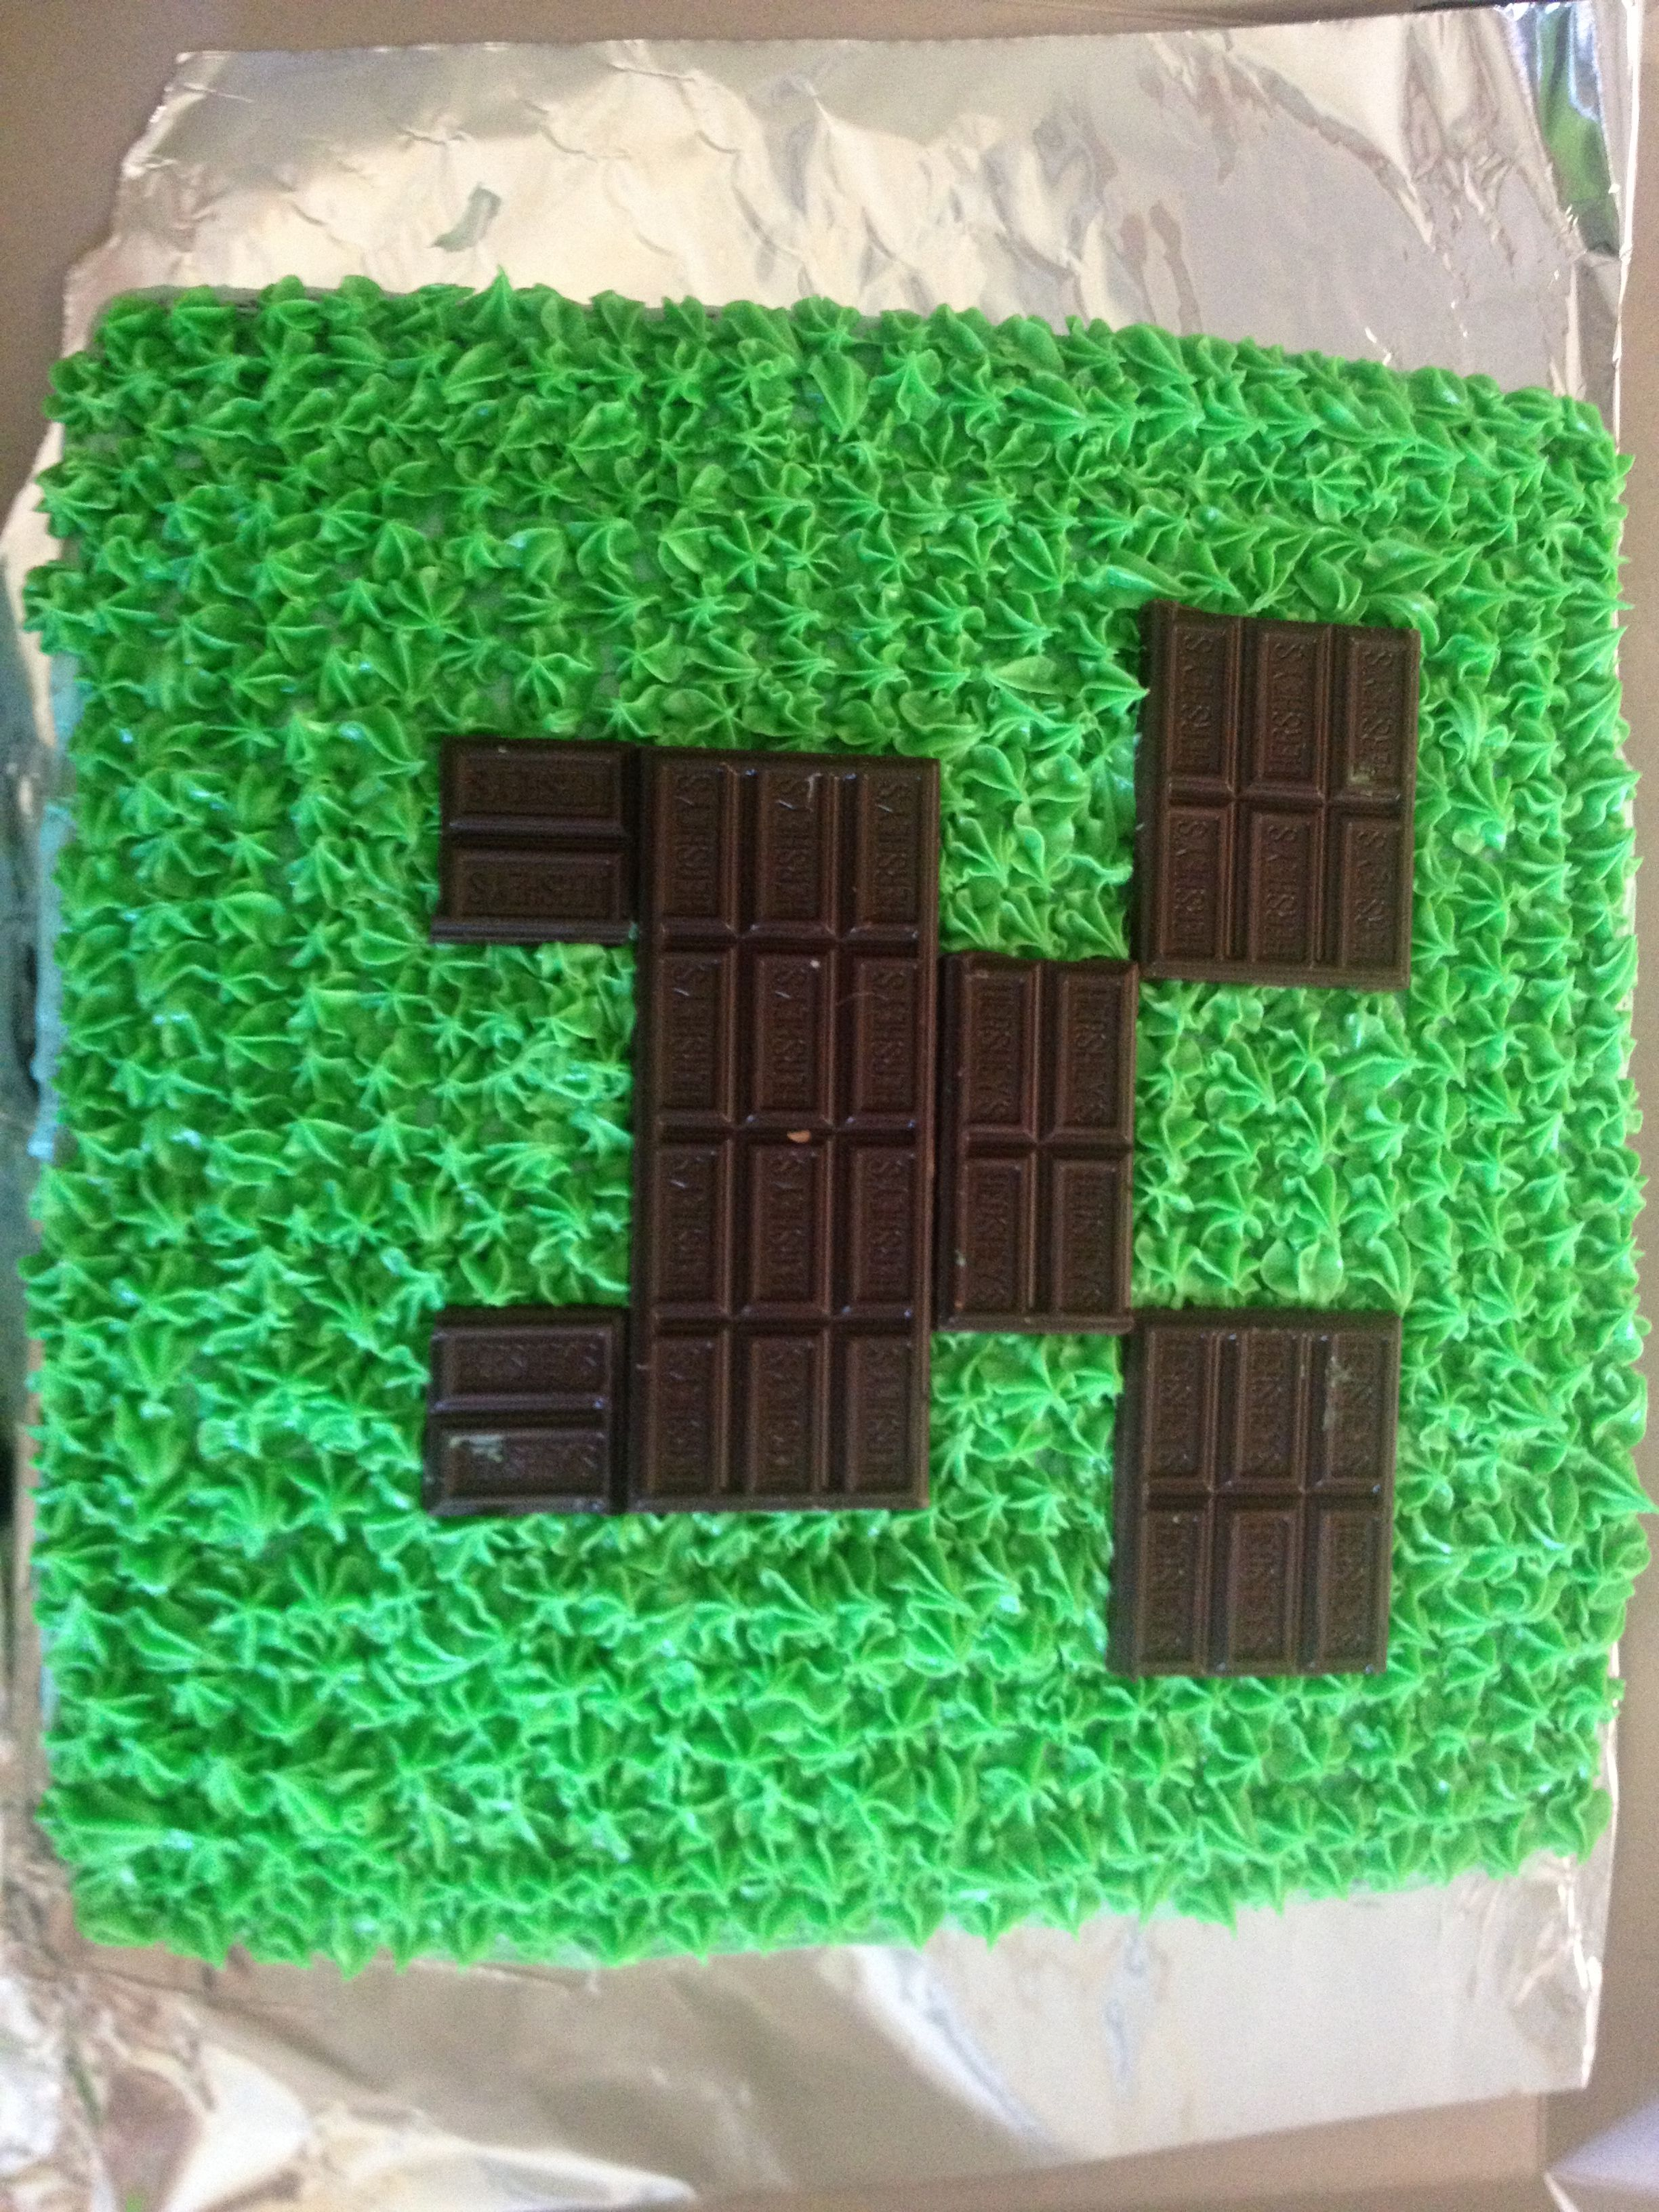 Minecraft Cake I Made For My Son S Birthday With Images